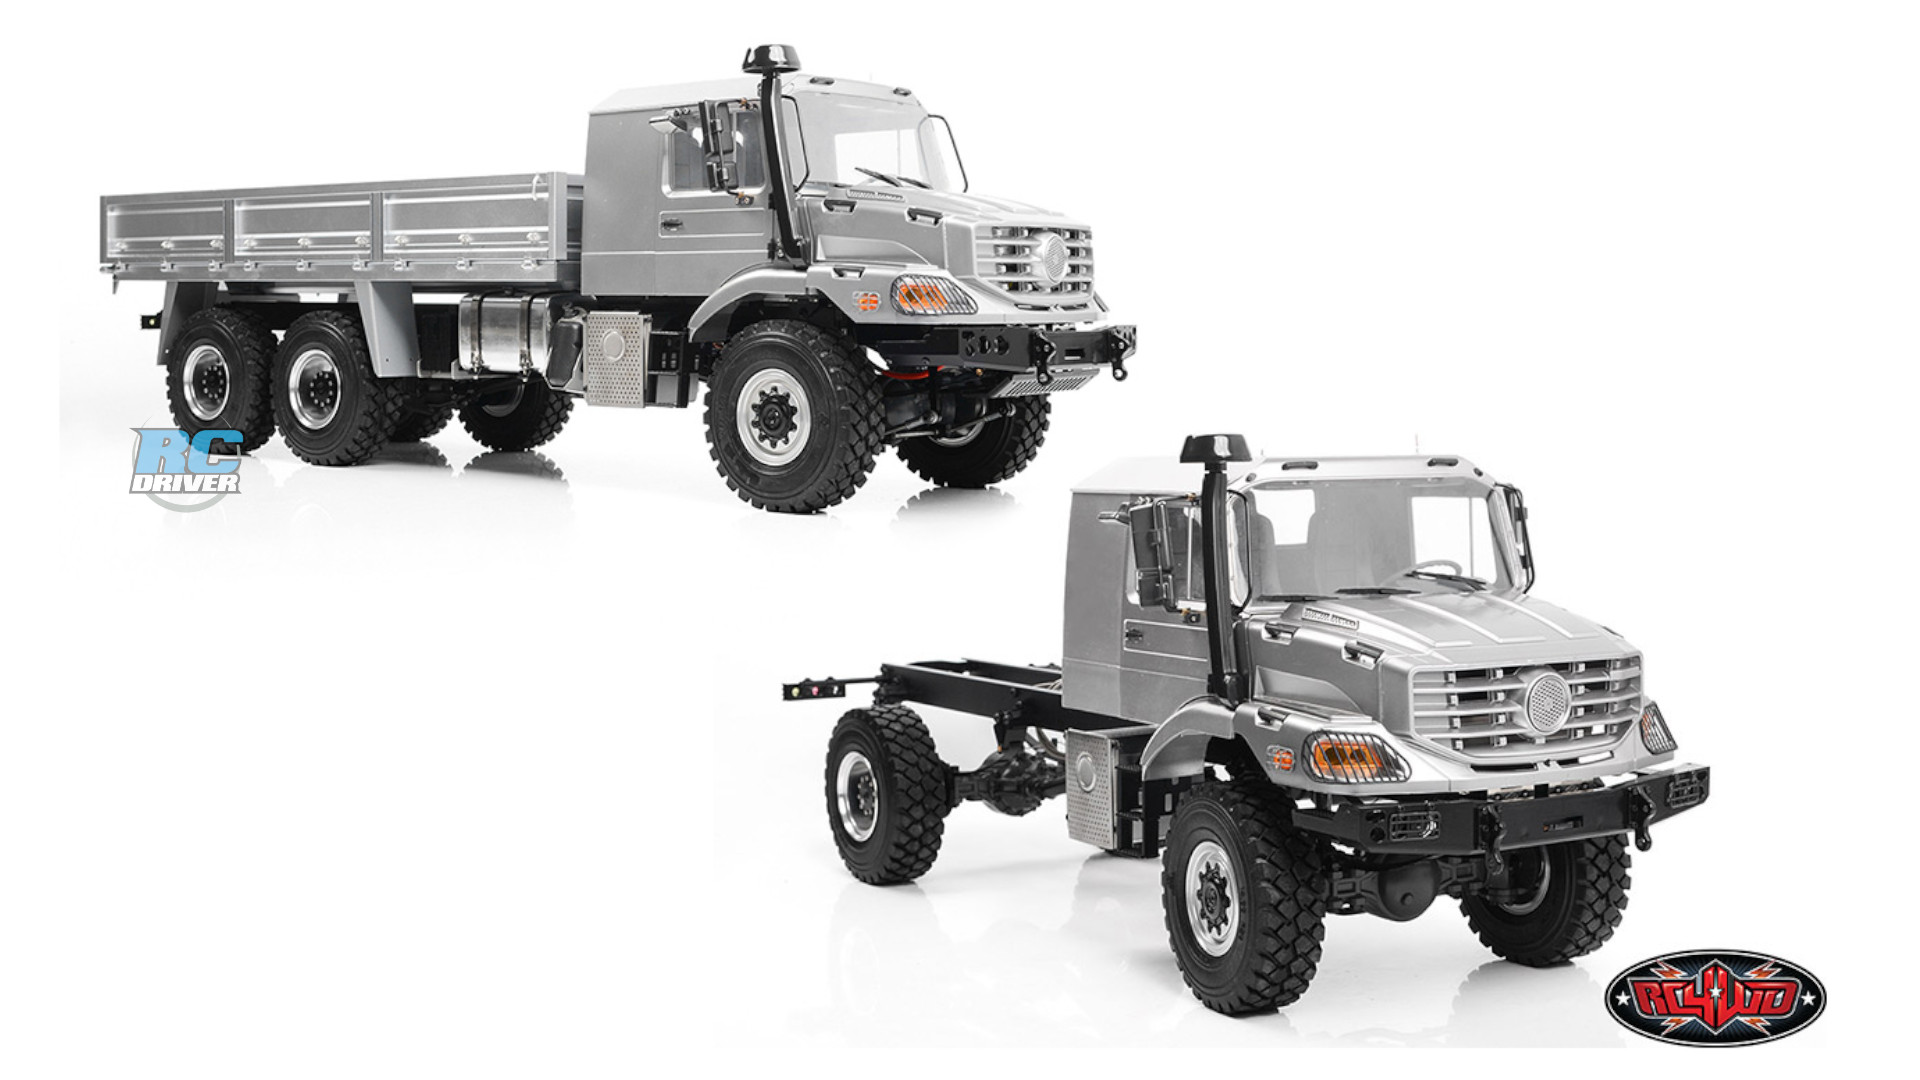 RC4WD 1/14 Overland 4x4 and 6x6 trucks